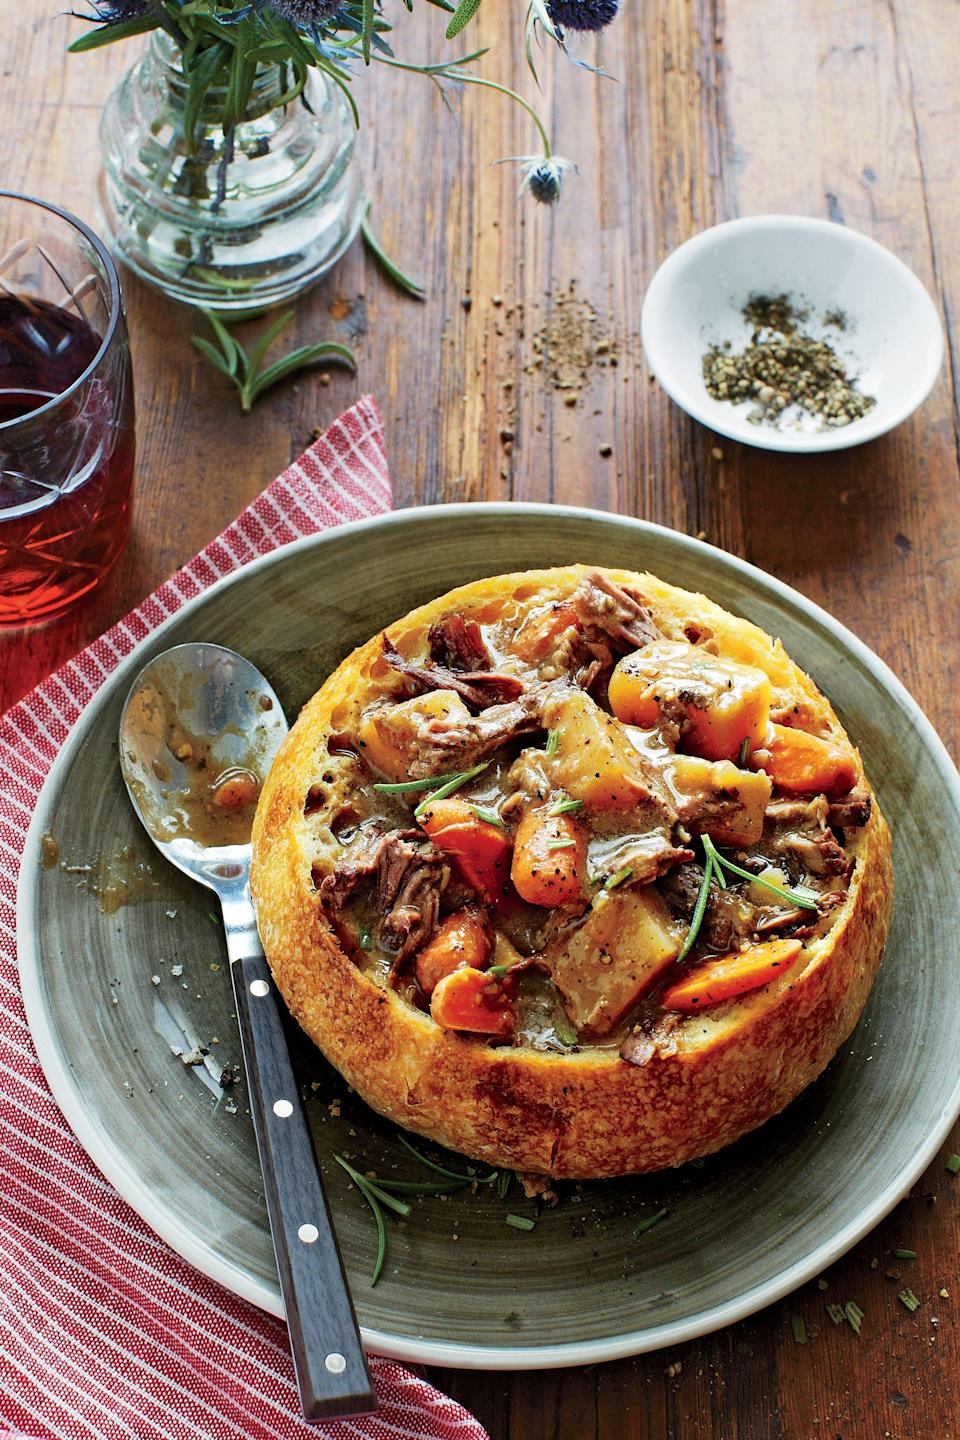 """<p><strong>Recipe: <a href=""""https://www.southernliving.com/syndication/peppered-beef-soup"""" rel=""""nofollow noopener"""" target=""""_blank"""" data-ylk=""""slk:Peppered Beef Soup"""" class=""""link rapid-noclick-resp"""">Peppered Beef Soup</a></strong></p> <p>Freeze leftovers in an airtight container up to three months. Add a bit of canned broth when reheating to reach desired consistency.</p>"""